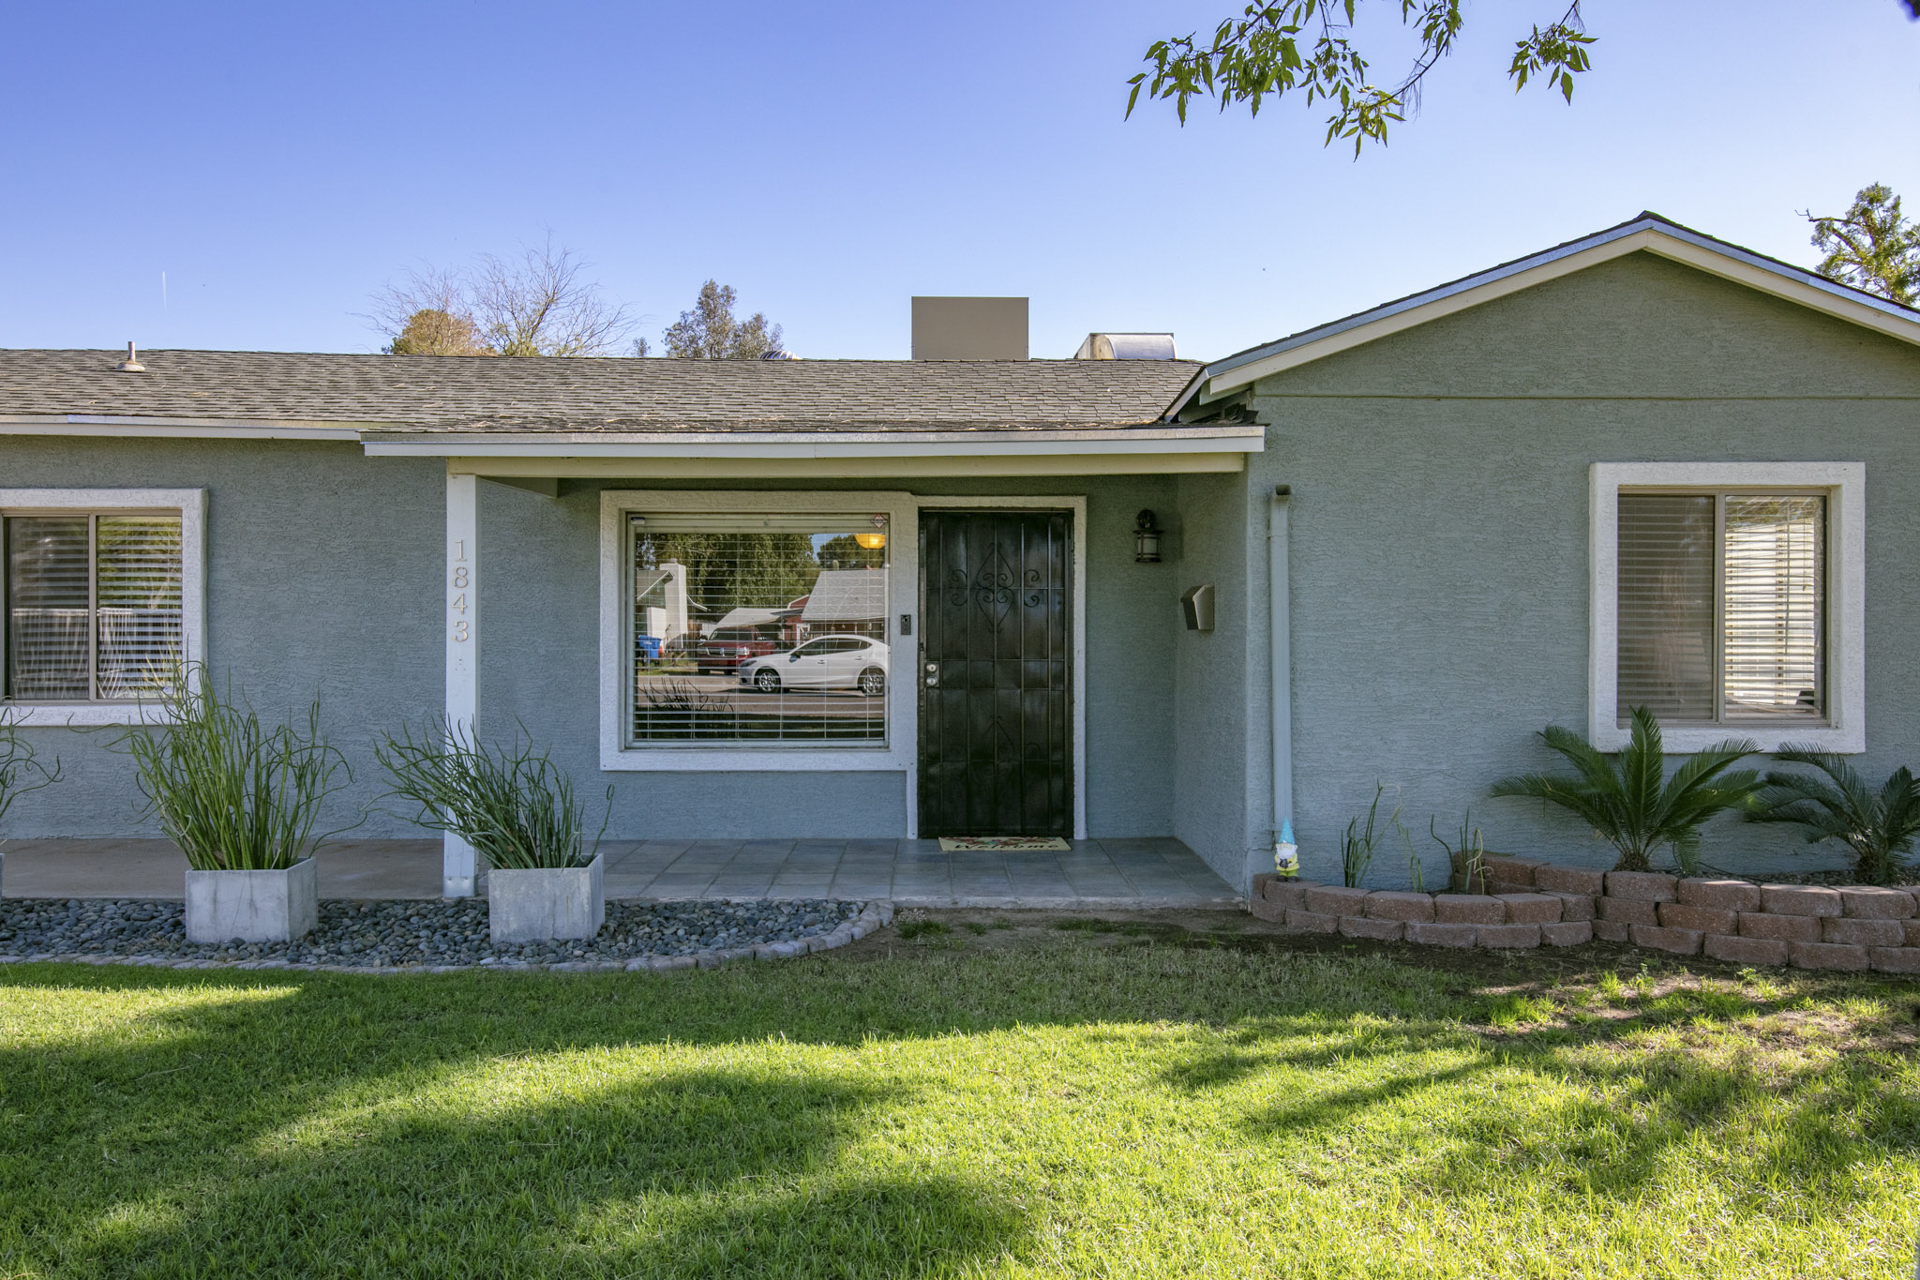 Under Contract! 1843 E Turney Avenue, Phoenix, AZ 85016 - Peters View | Amy Jones Group